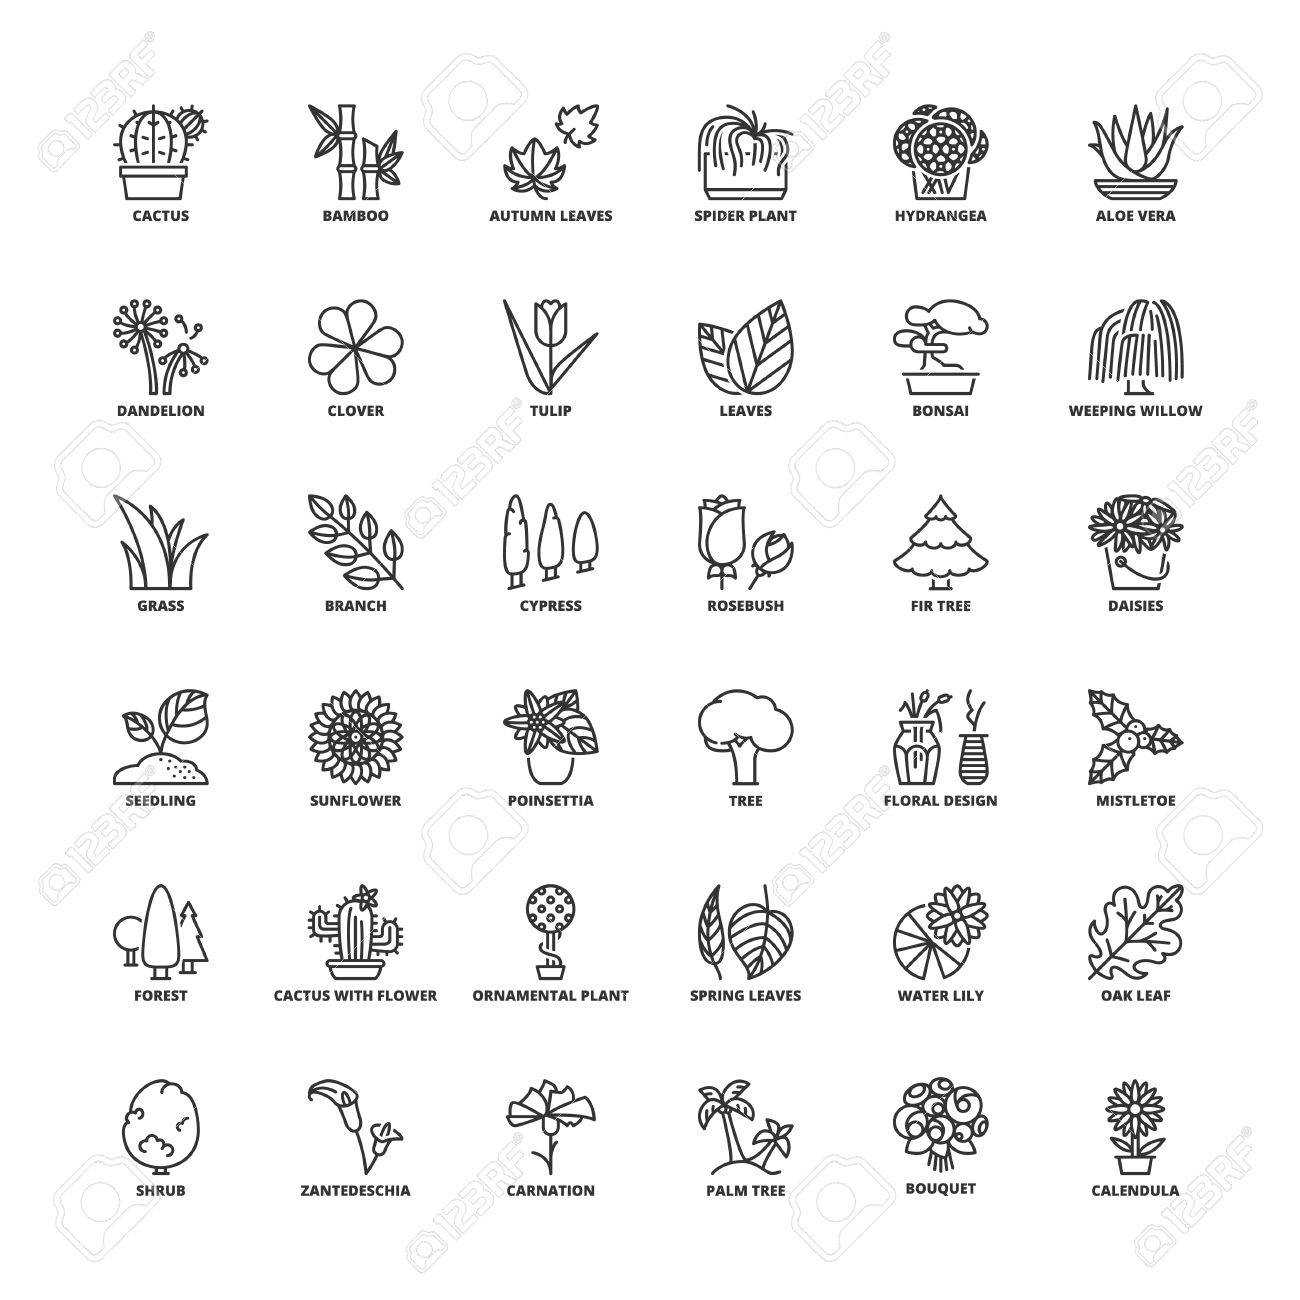 Outline Icons Set Flat Symbols About Flowers Plants And Trees